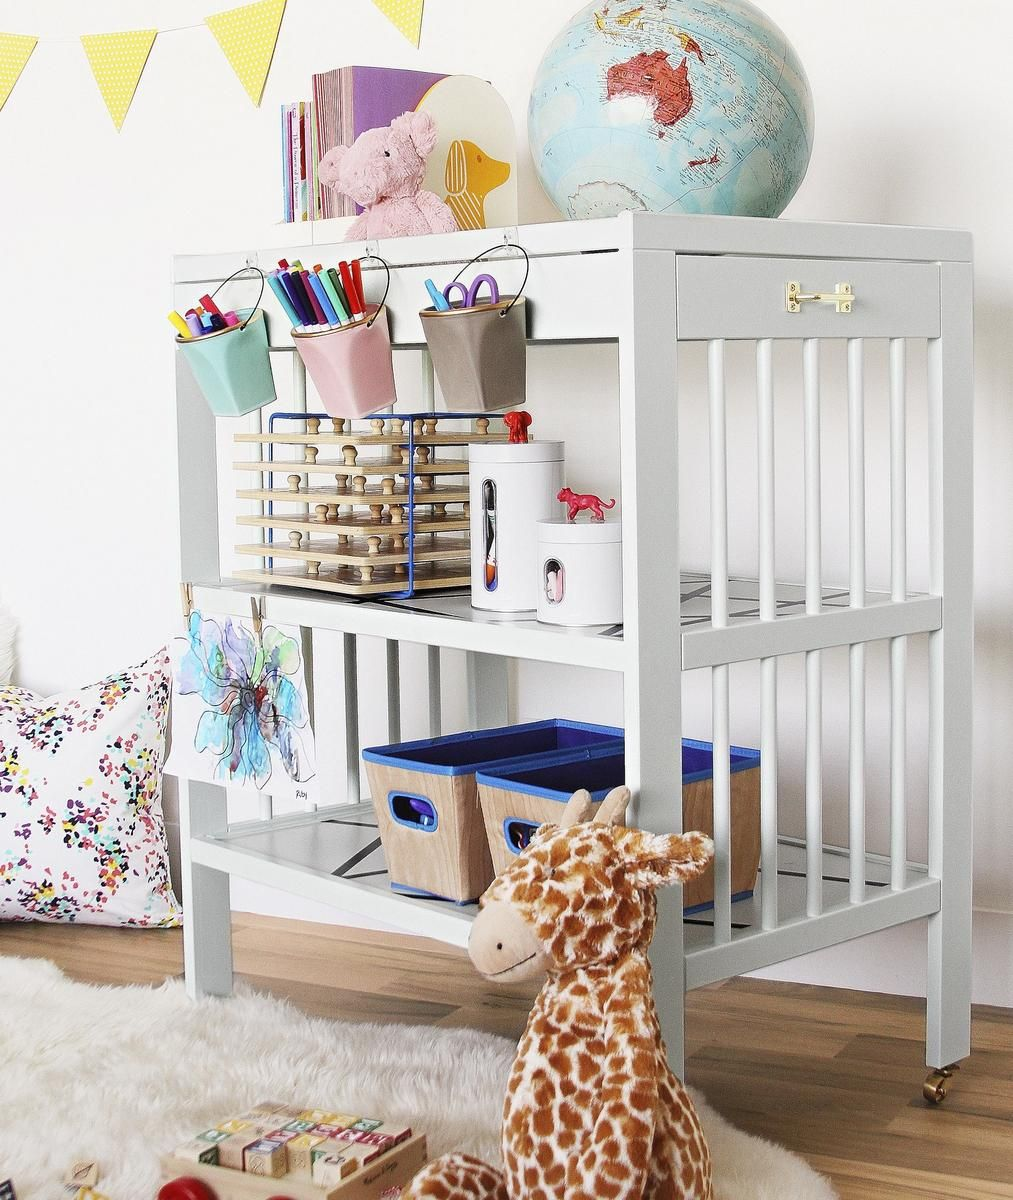 How to Choose a Changing Table - Project Nursery